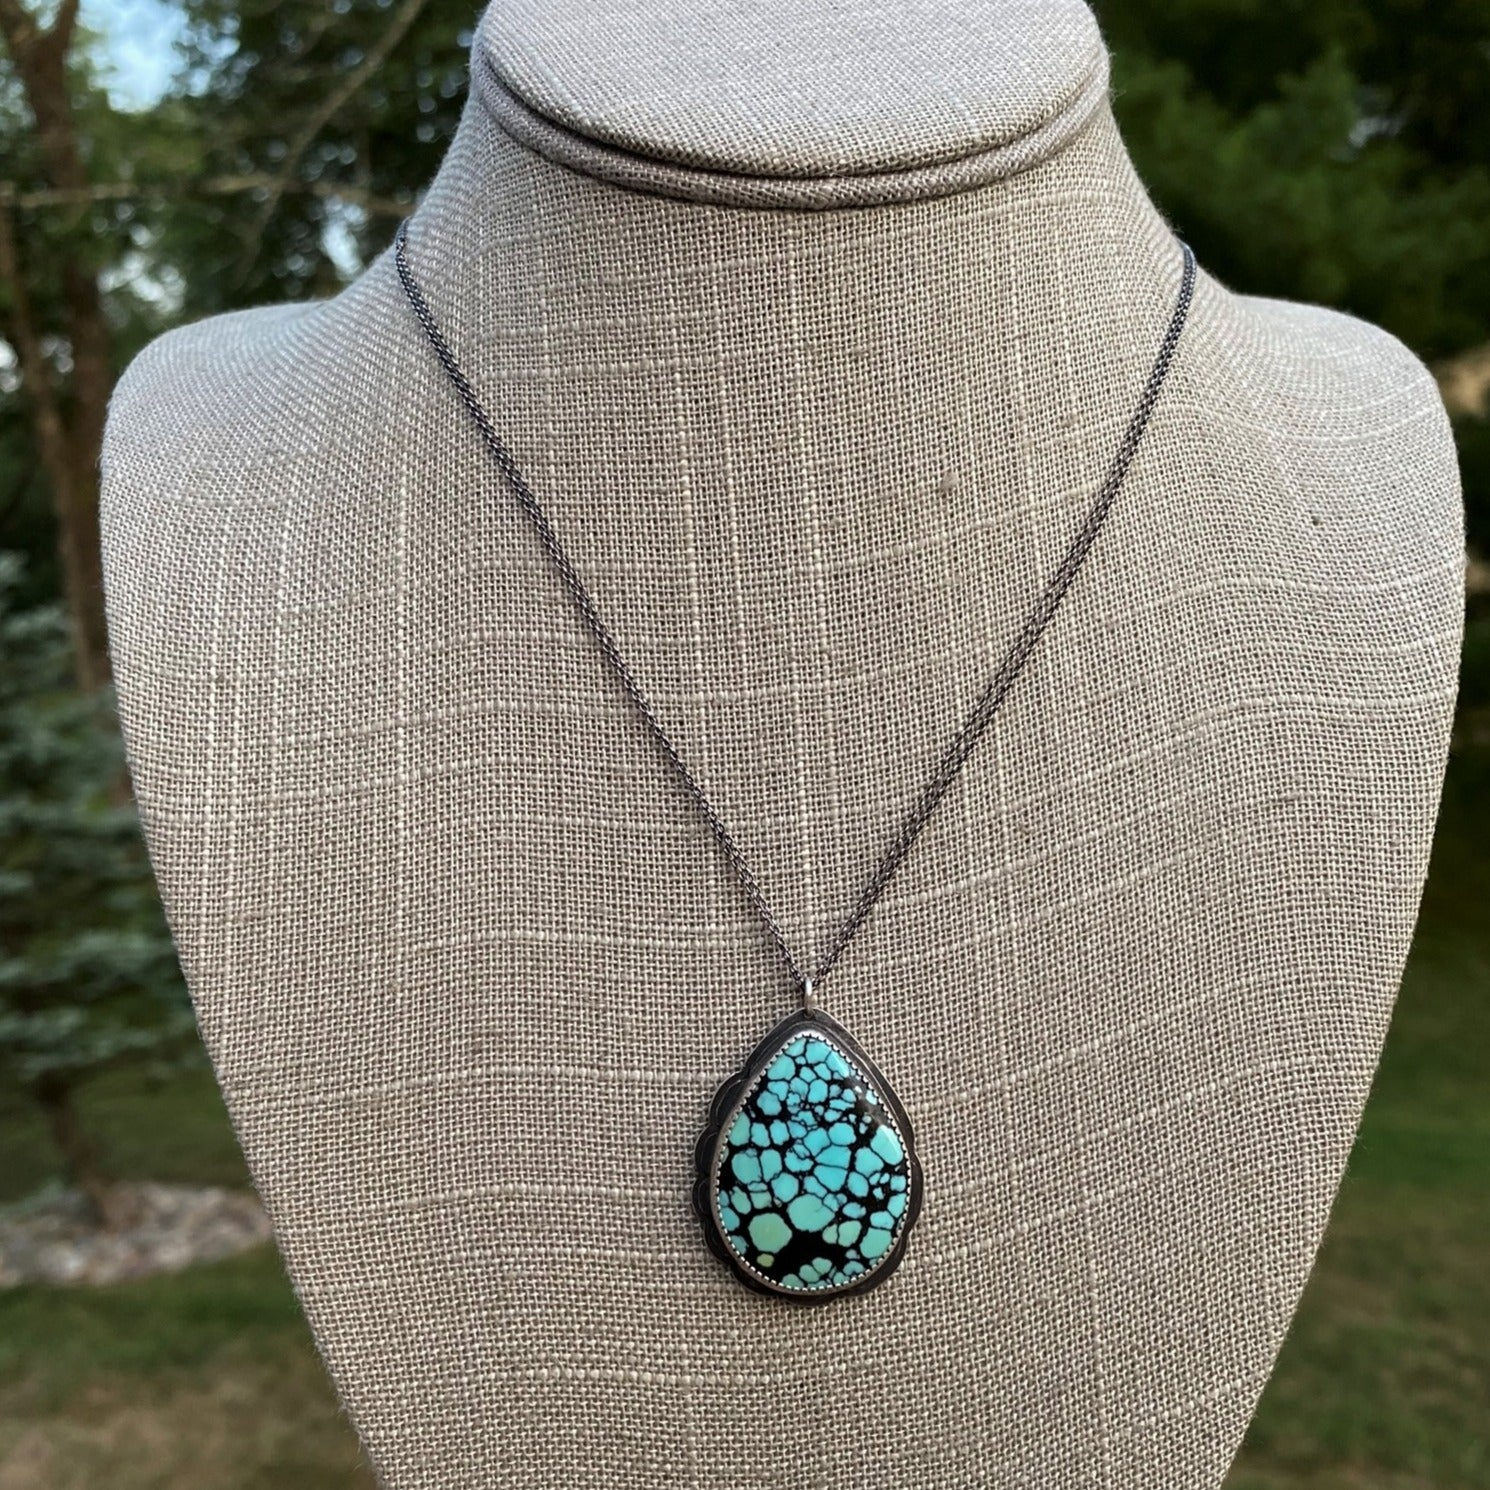 Hubei Turquoise Teardrop Pendant Necklace